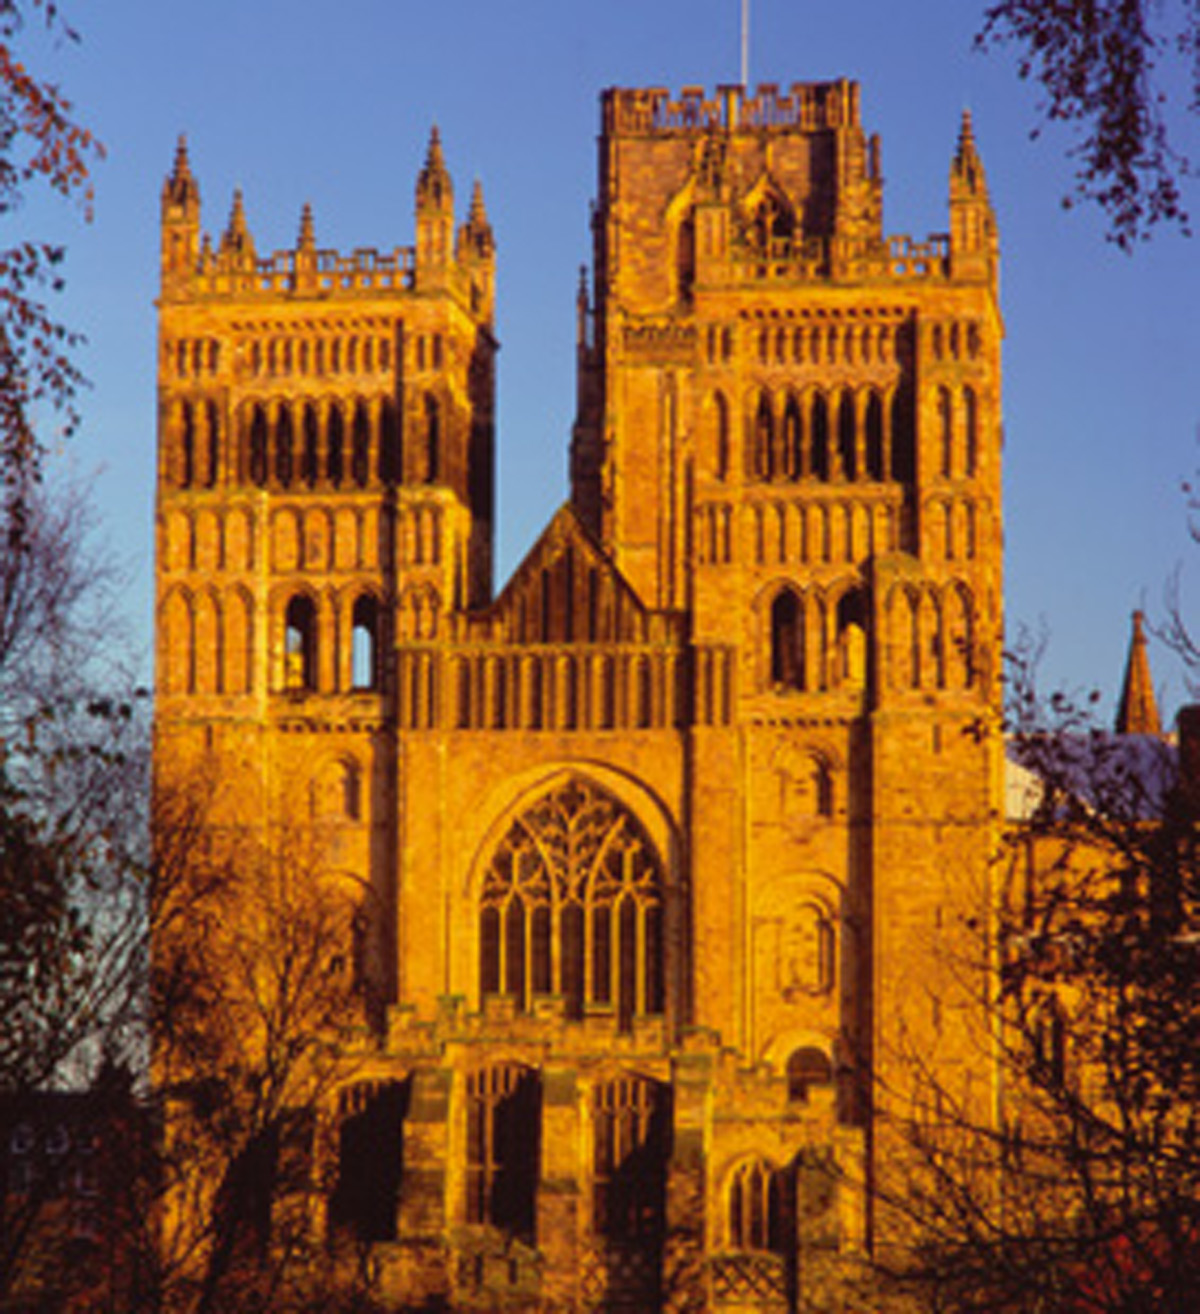 HISTORIC DISCOVERY: Evidence of Roman remains found beneath Durham Cathedral